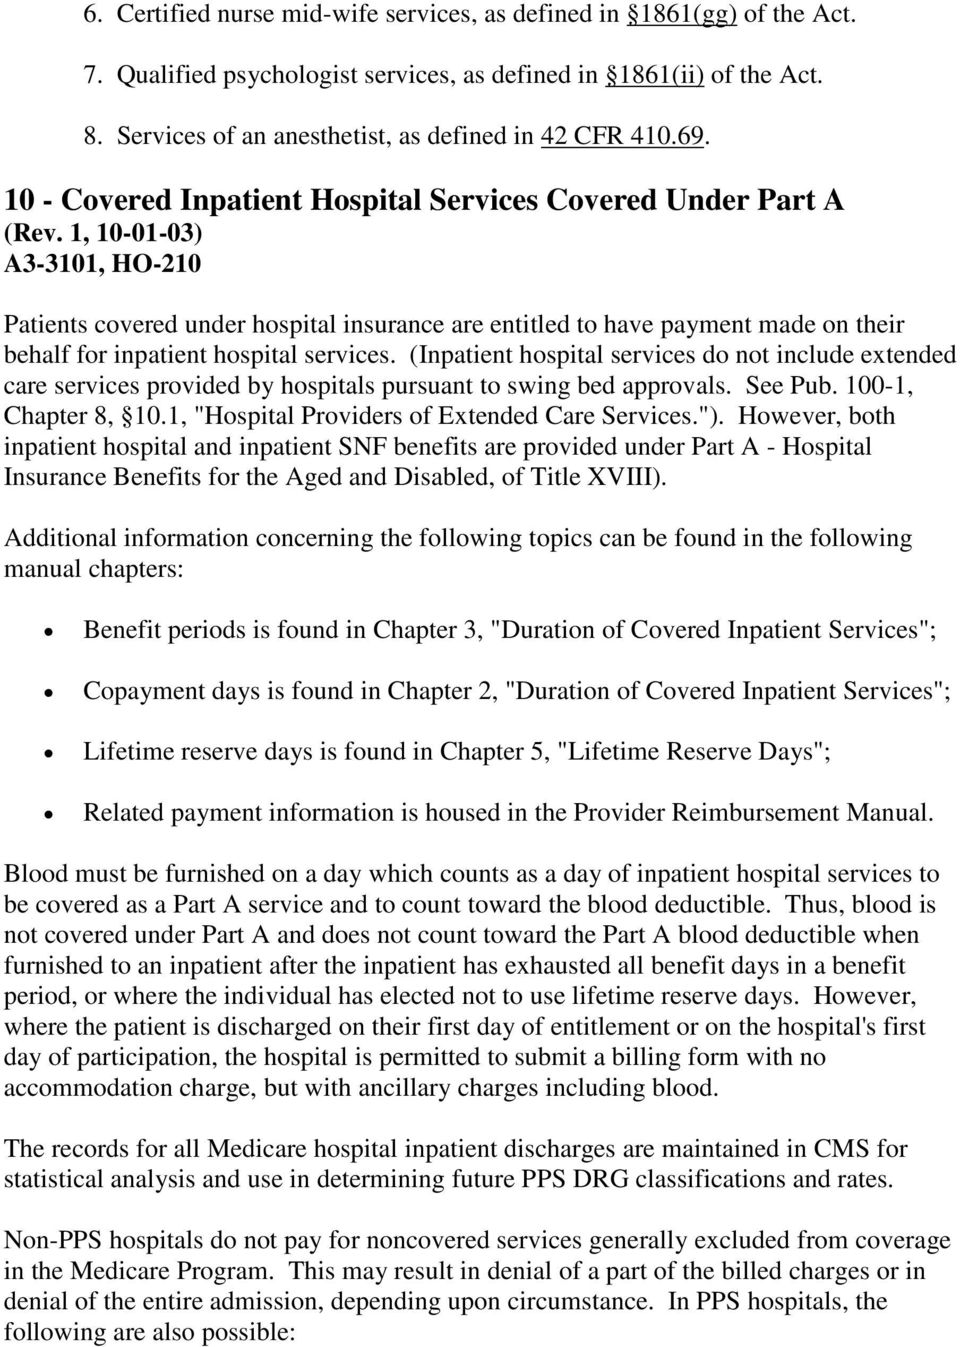 services. (Inpatient hospital services do not include extended care services provided by hospitals pursuant to swing bed approvals. See Pub. 100-1, Chapter 8, 10.